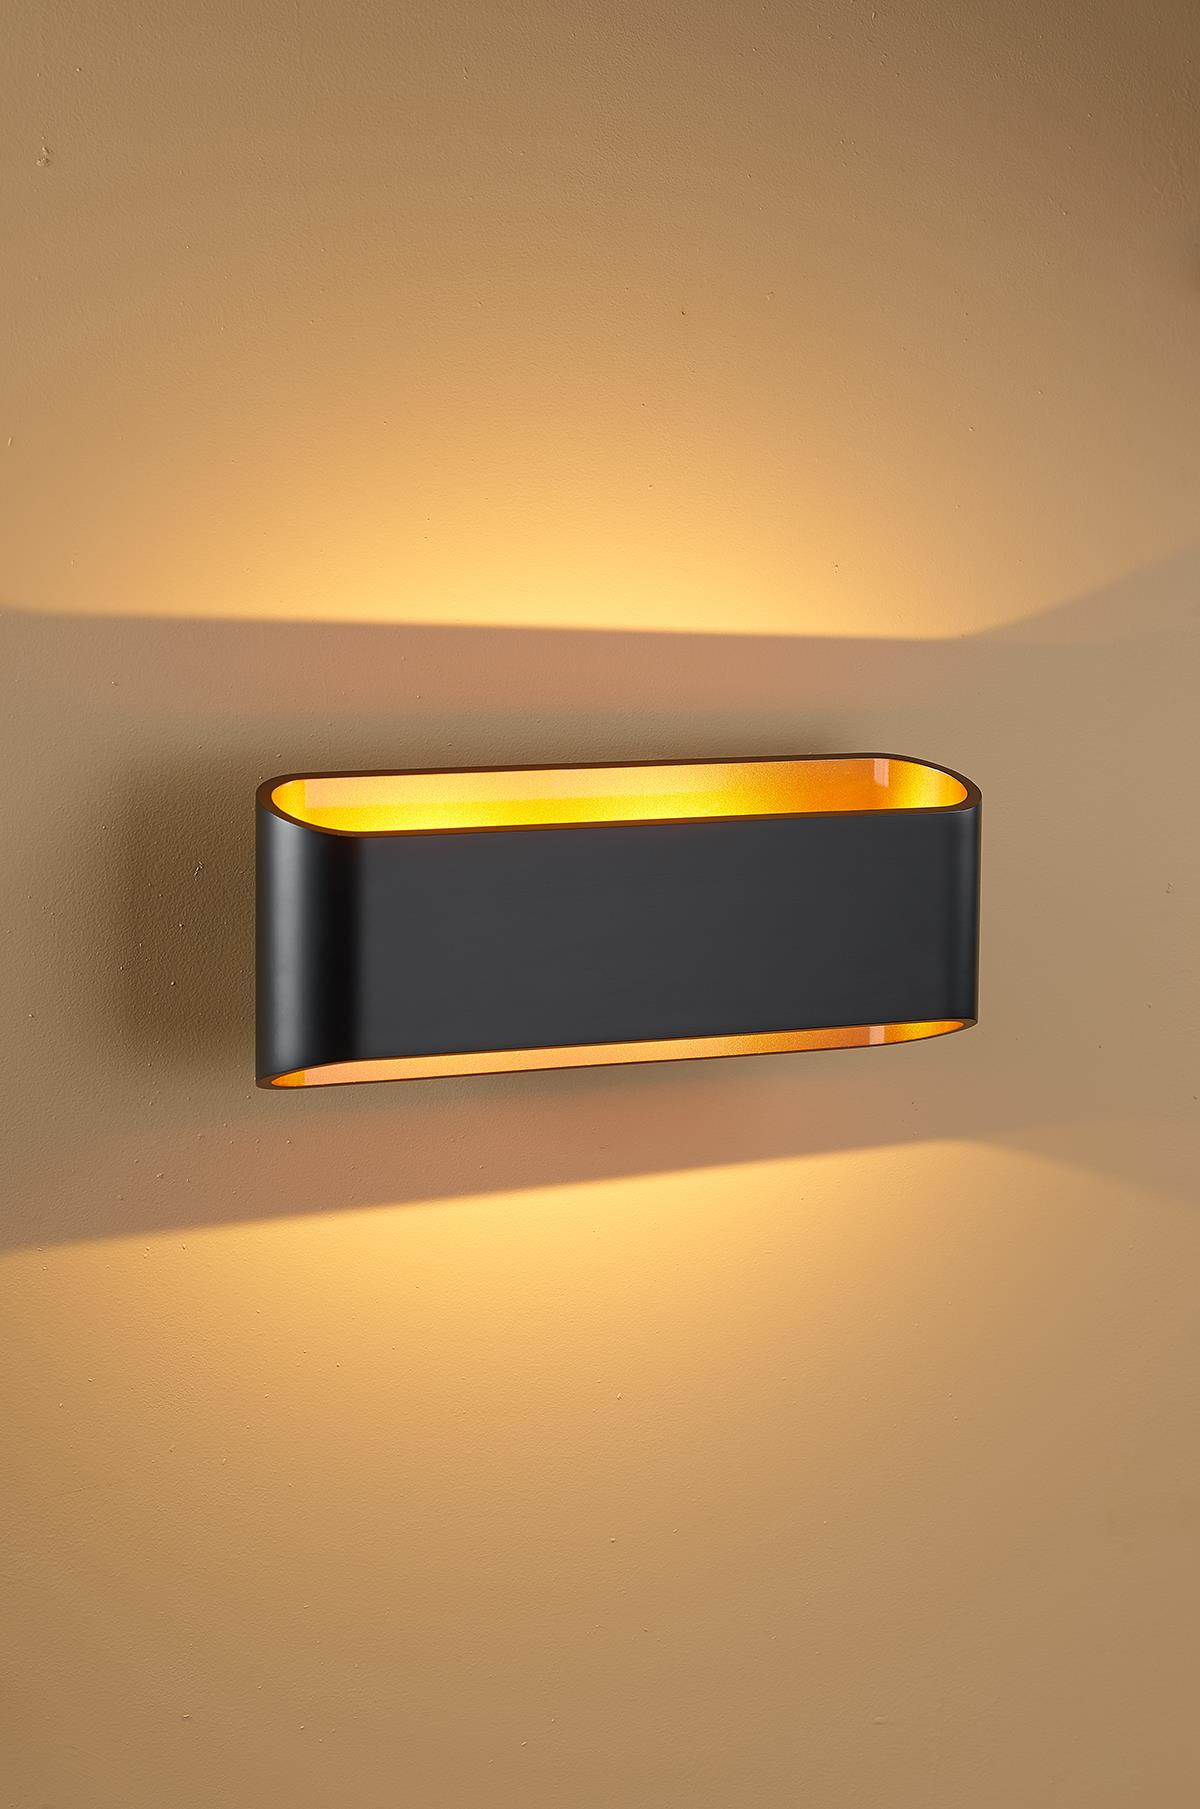 Bruck Lighting Eclipse 2 Wall Sconce - Walmart.com